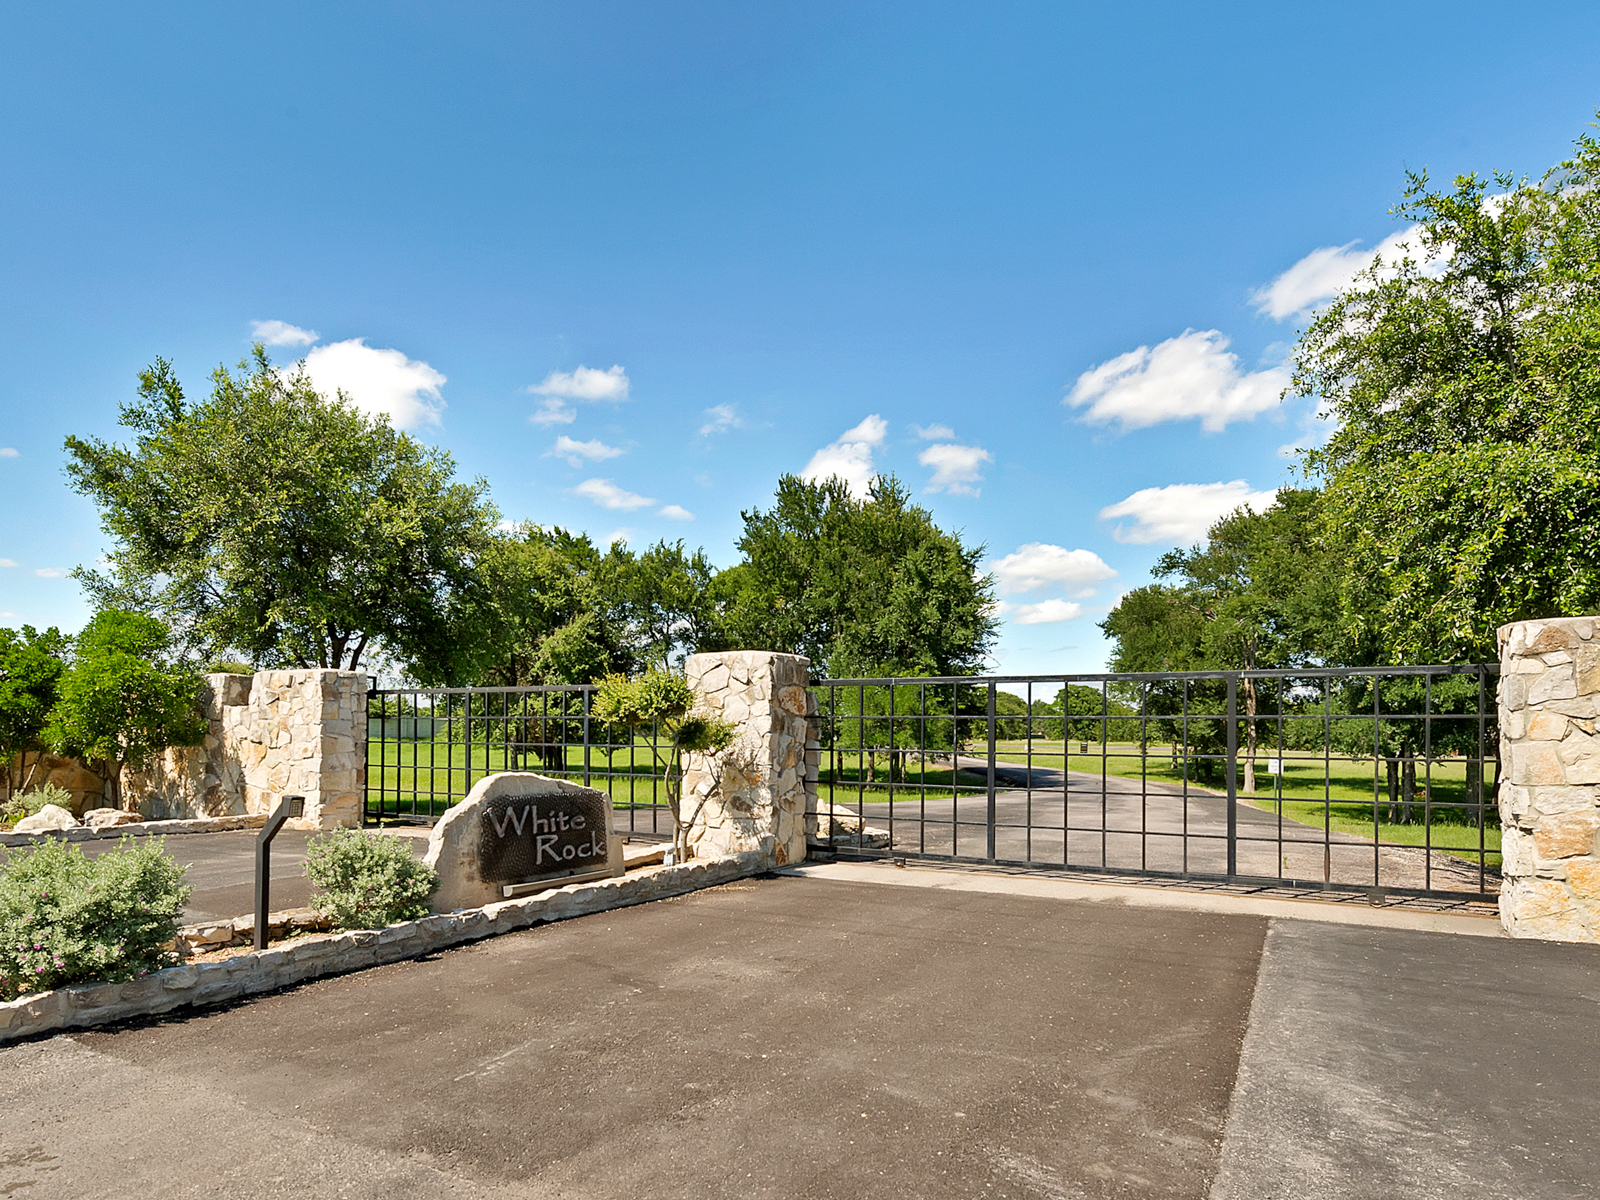 Land for Sale at Premier White Rock Lot Lot 31 White Rock Road Corsicana, Texas 75109 United States